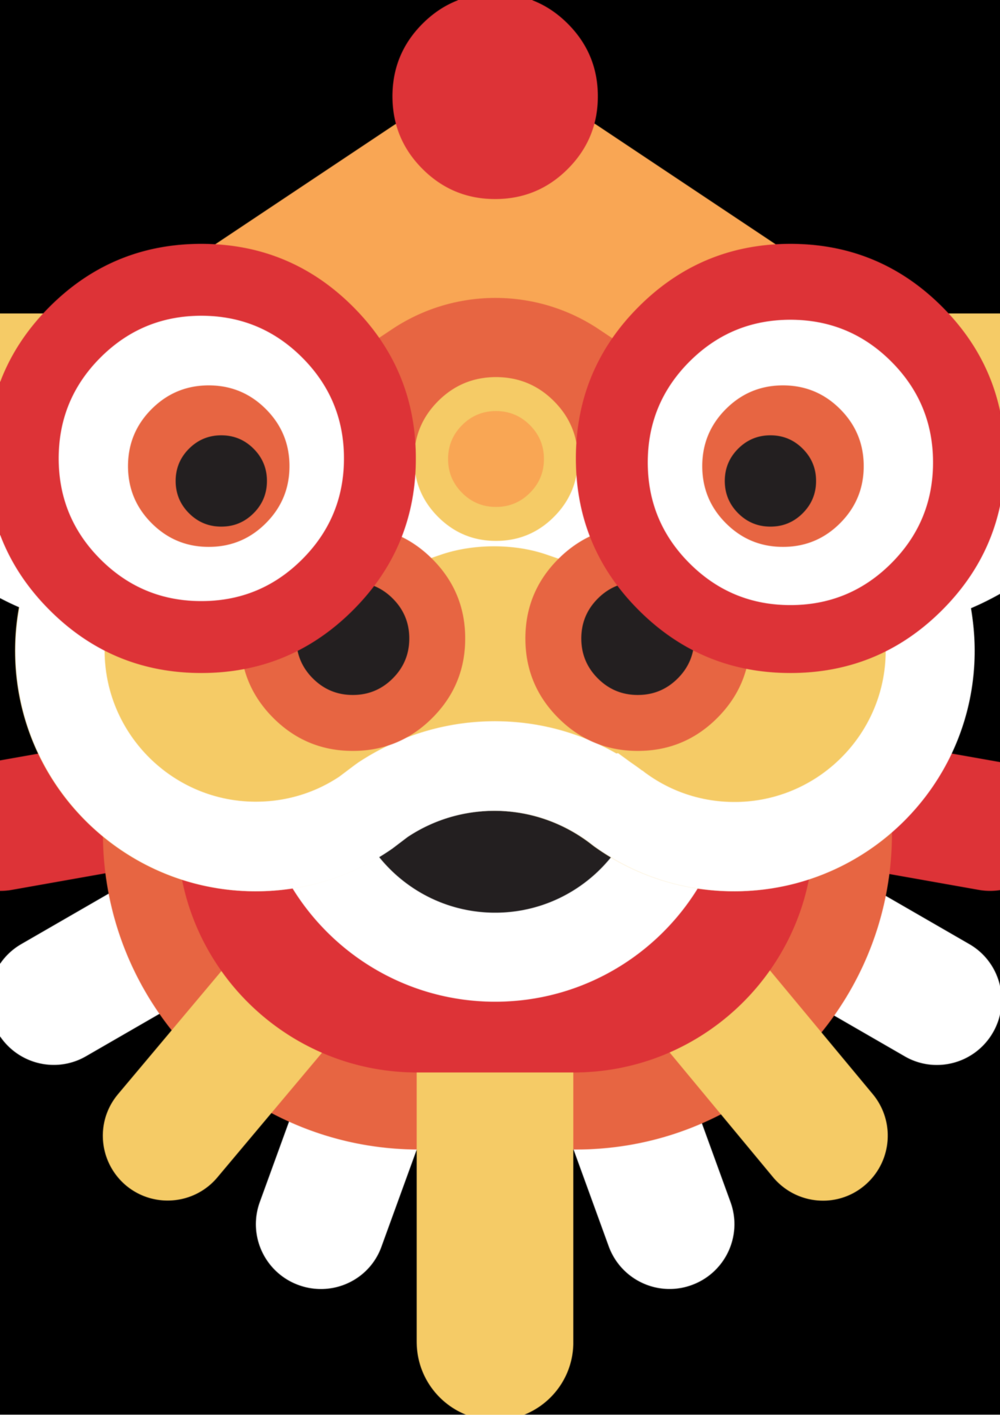 Lunar New Year Dancing Lion Face Mask to print, cut out and use!